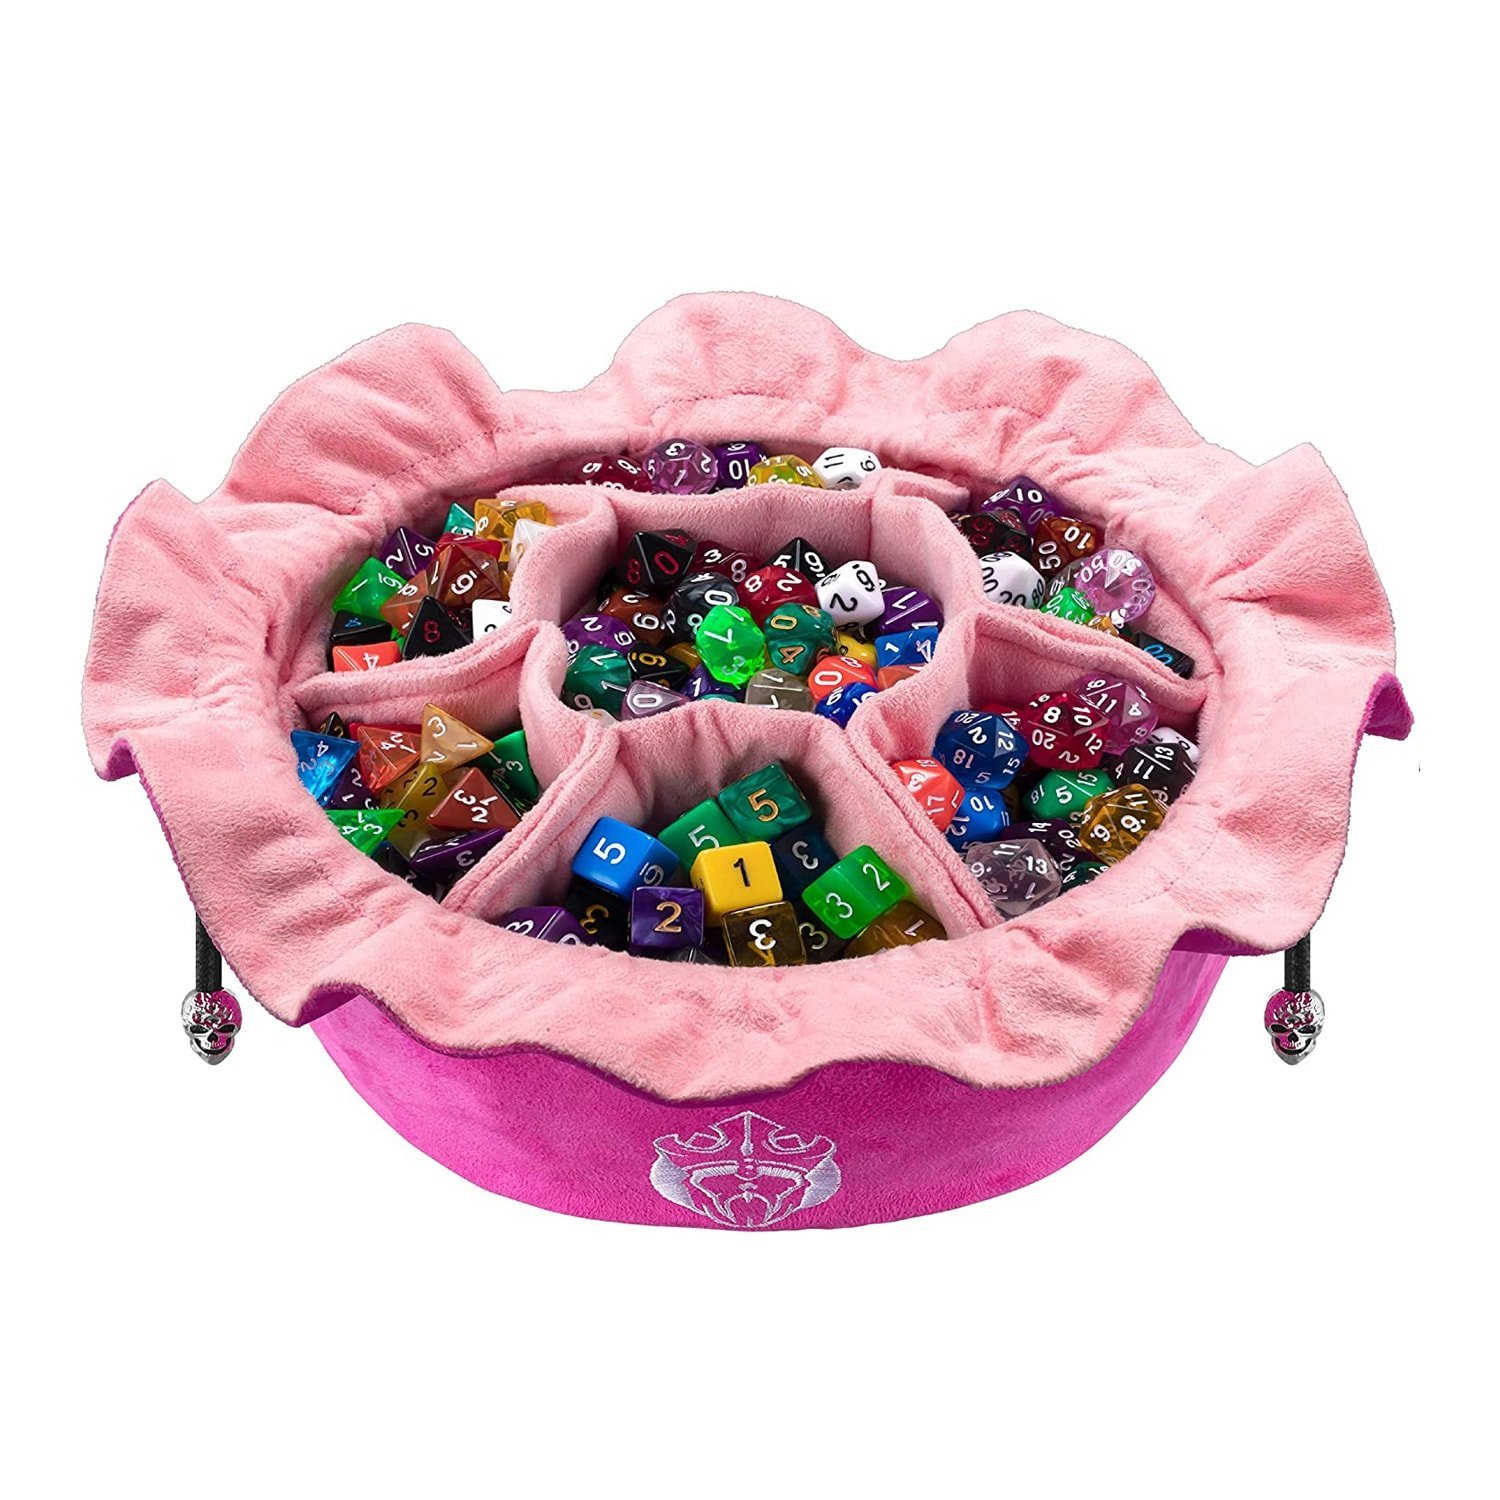 Cardkingpro Immense Dice Bags with Pockets – Pink